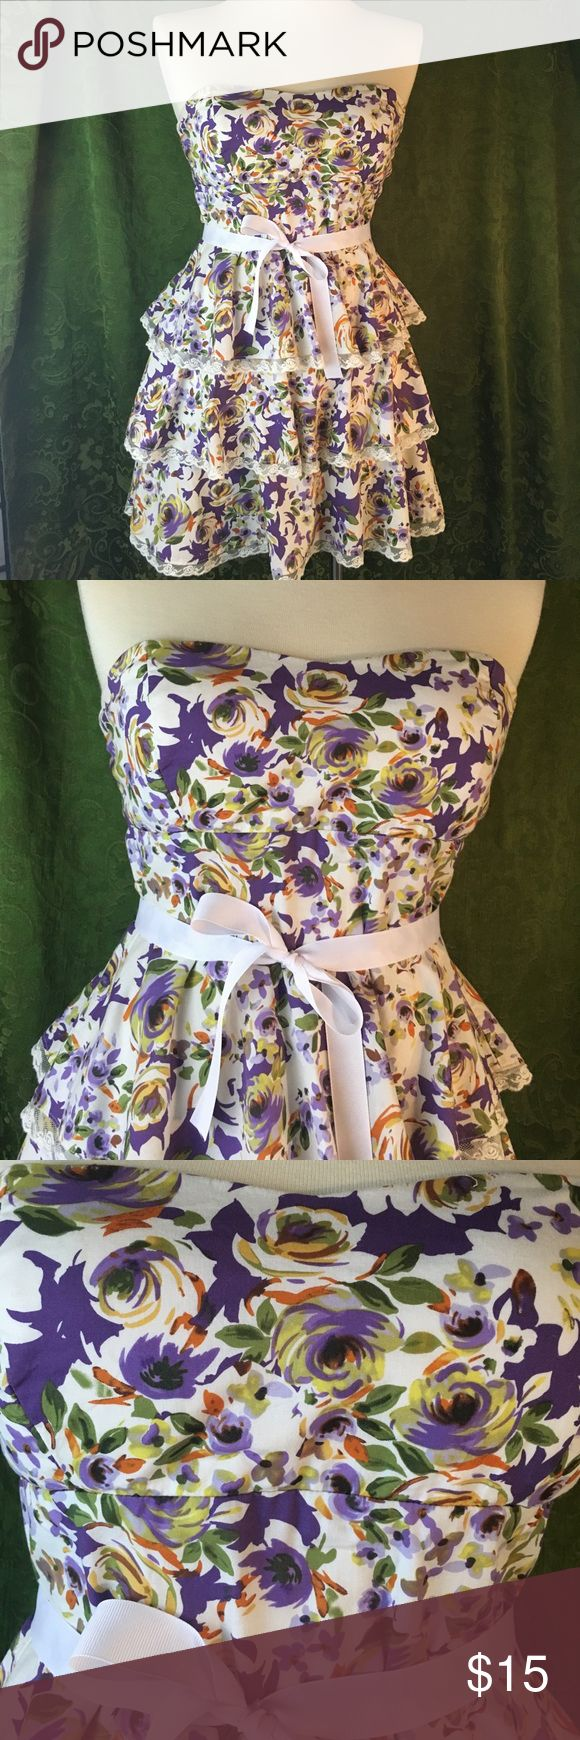 "B Smart strapless tiered floral sundress sz 10 Floral print in purple/green/yellow/orange on white with three tiers of ruffles, each trimmed in white lace. Cotton-rich (97%) with some spandex (3%) and a poly lining. Machine washable. Fully functional back zipper. Strapless with padded cups. Grosgrain ribbon belt. Perfect for a summer wedding or date. No holes or tears. EUC from a smoke free home. 16"" armpit to armpit. 15"" under bust. 14"" across waist. 18"" waist to hem. B Smart Dresses…"